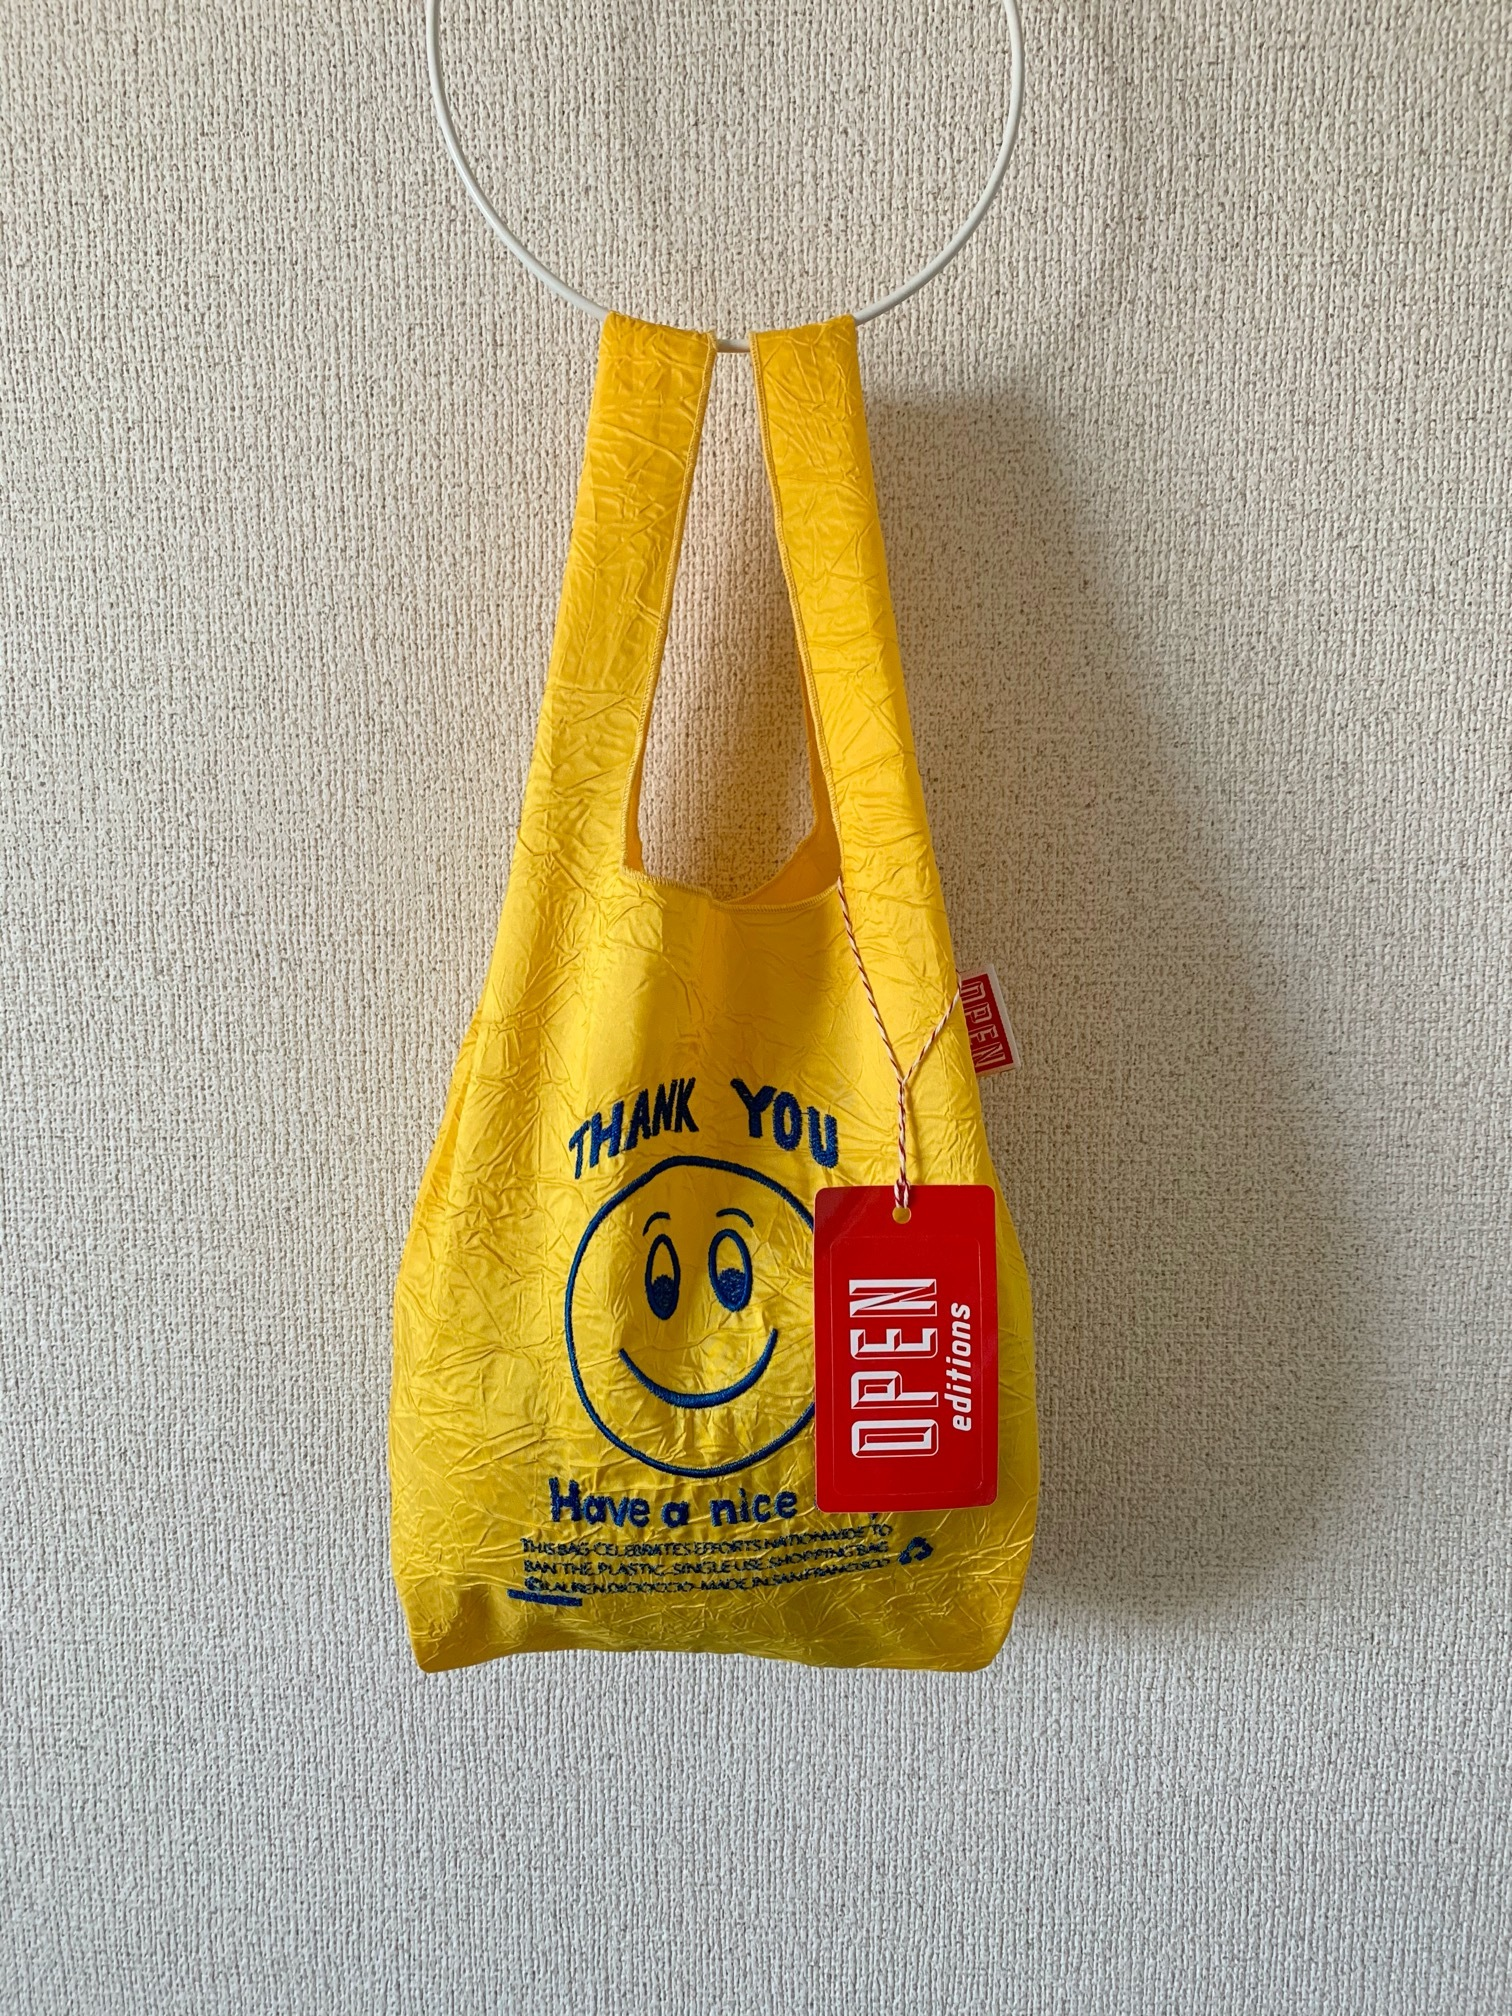 【OPEN EDITIONS】THANK YOU MINI エコバッグ/ SMILE Yellow